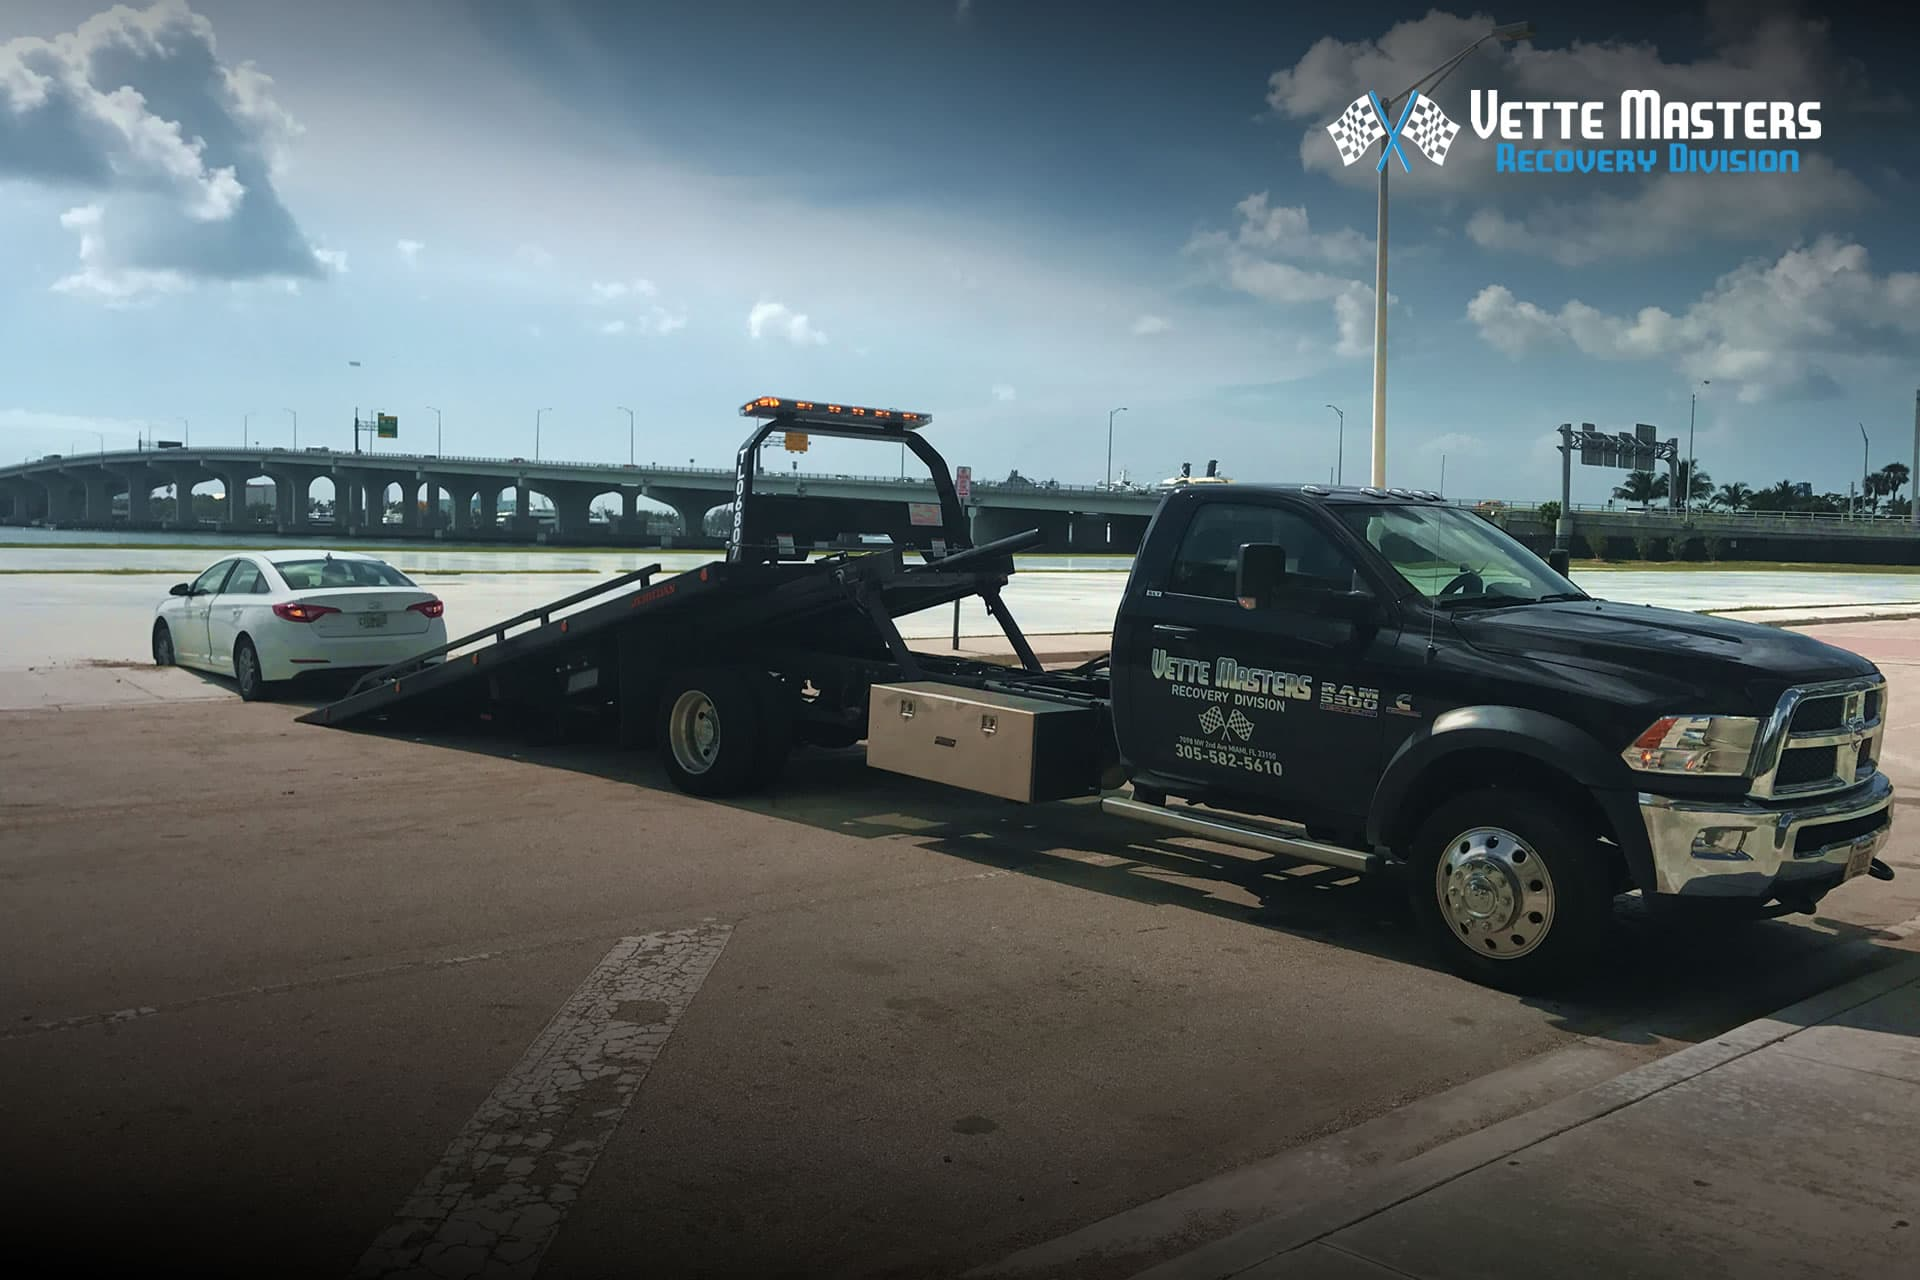 vette-masters-best-tow-truck-towing-service-miami